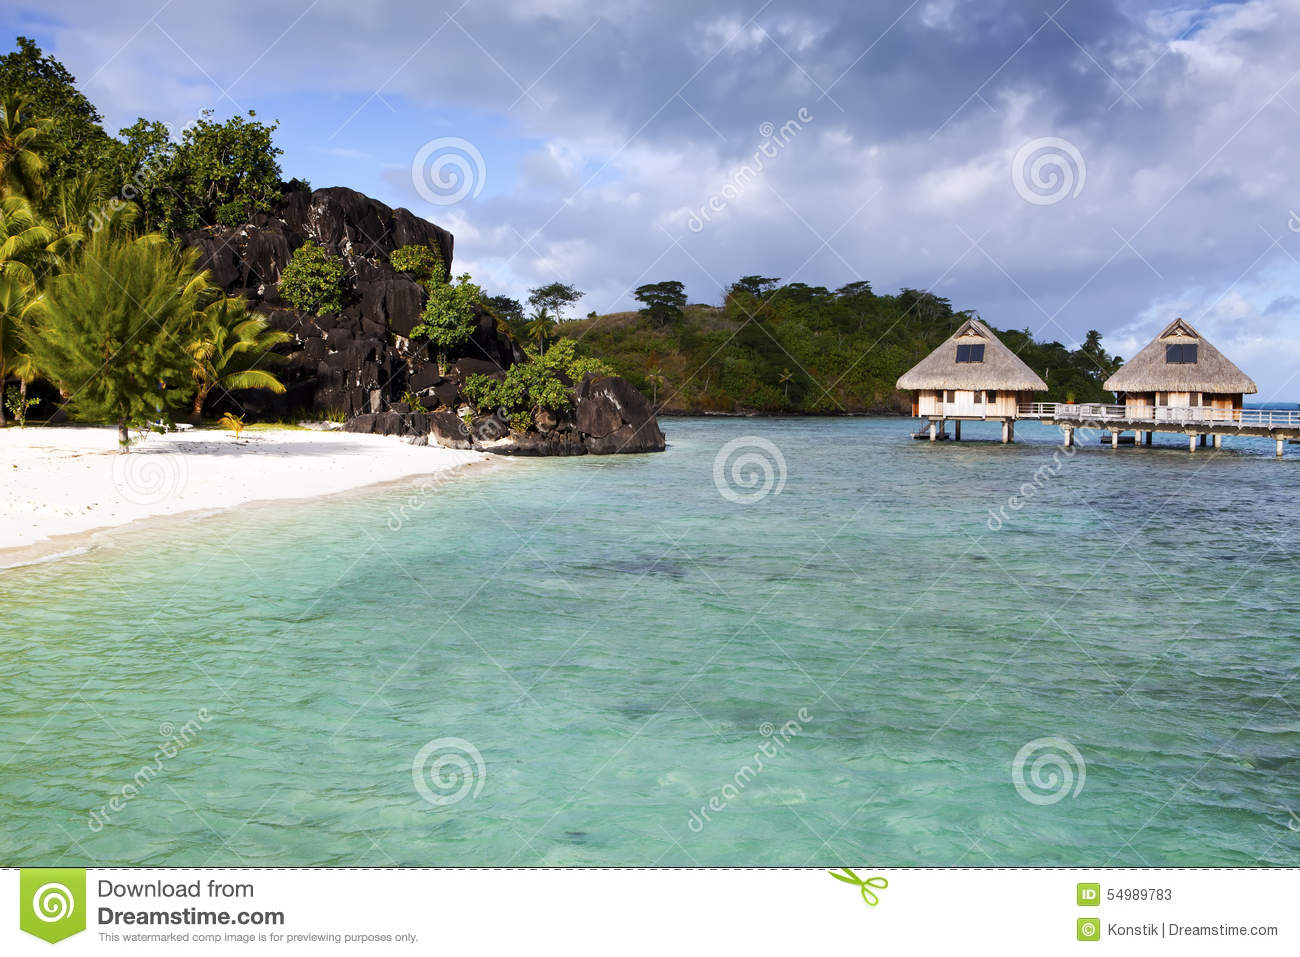 Typical Polynesian Landscape - Island With Palm Trees And Small Houses On  Water In The Ocean And Mountains On A Background Stock Photo - Image:  54989783